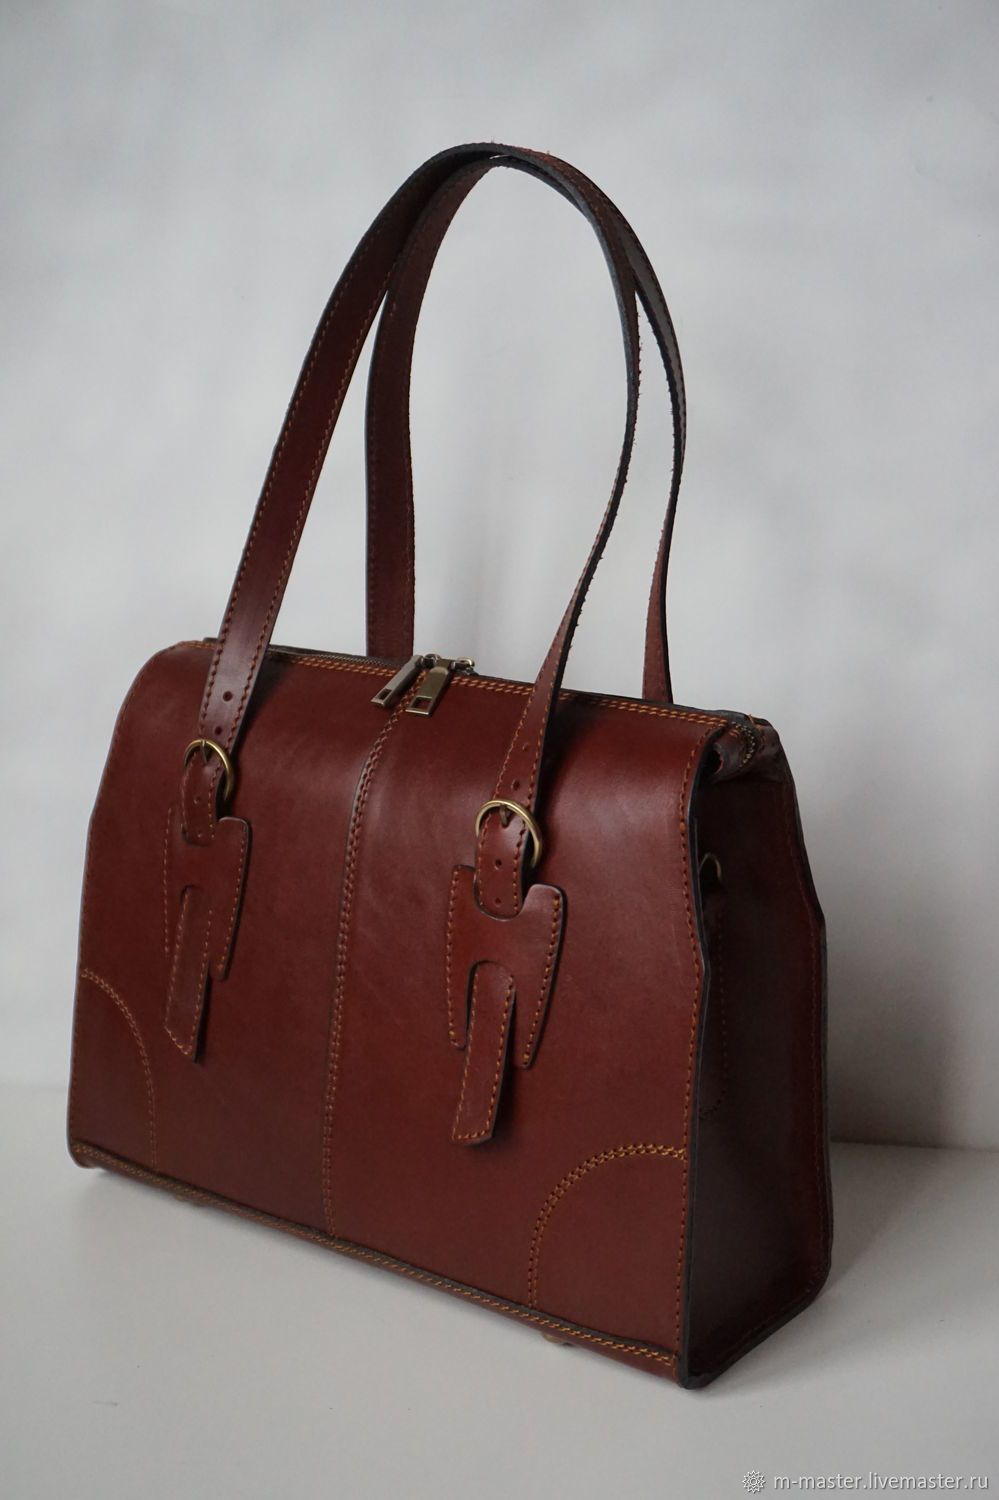 Beautiful Bags · Leather Tote Handbags · https   www.livemaster .ru item 23731041-sumki- 3769902db3b26